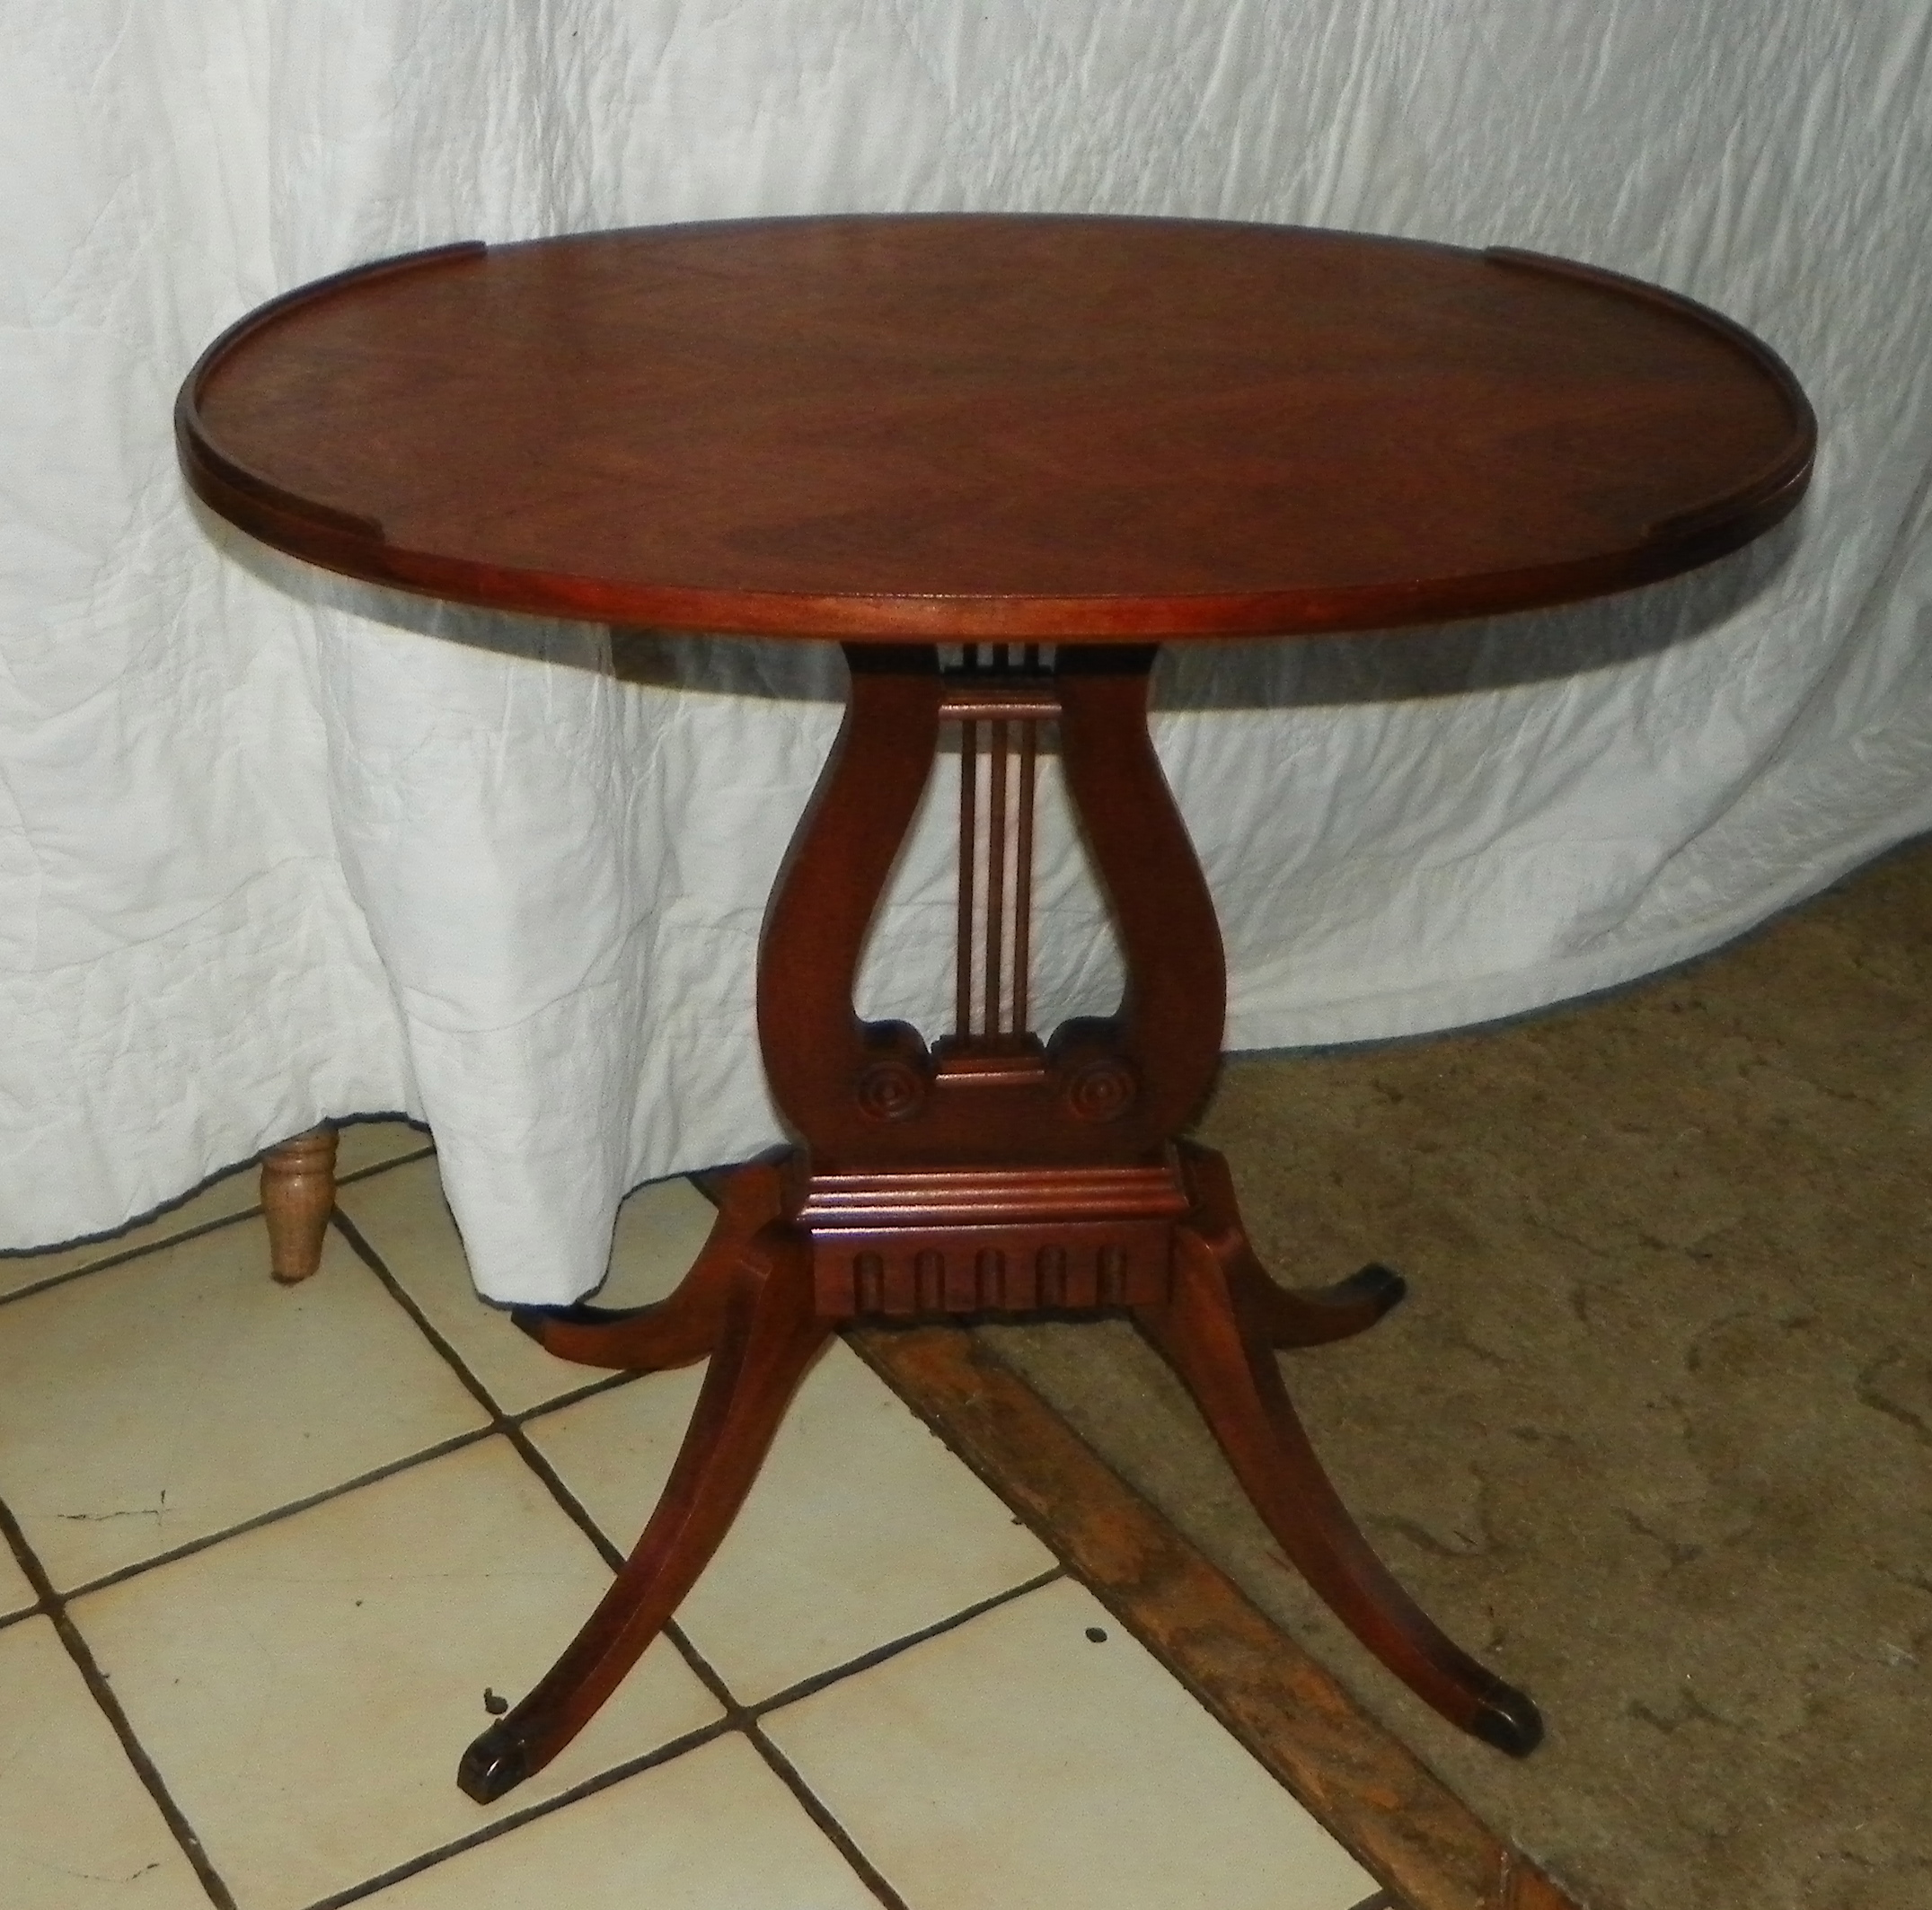 oval mahogany lyre base end table side table t388 for sale antiquescom classifieds - Antique Mahogany End Tables